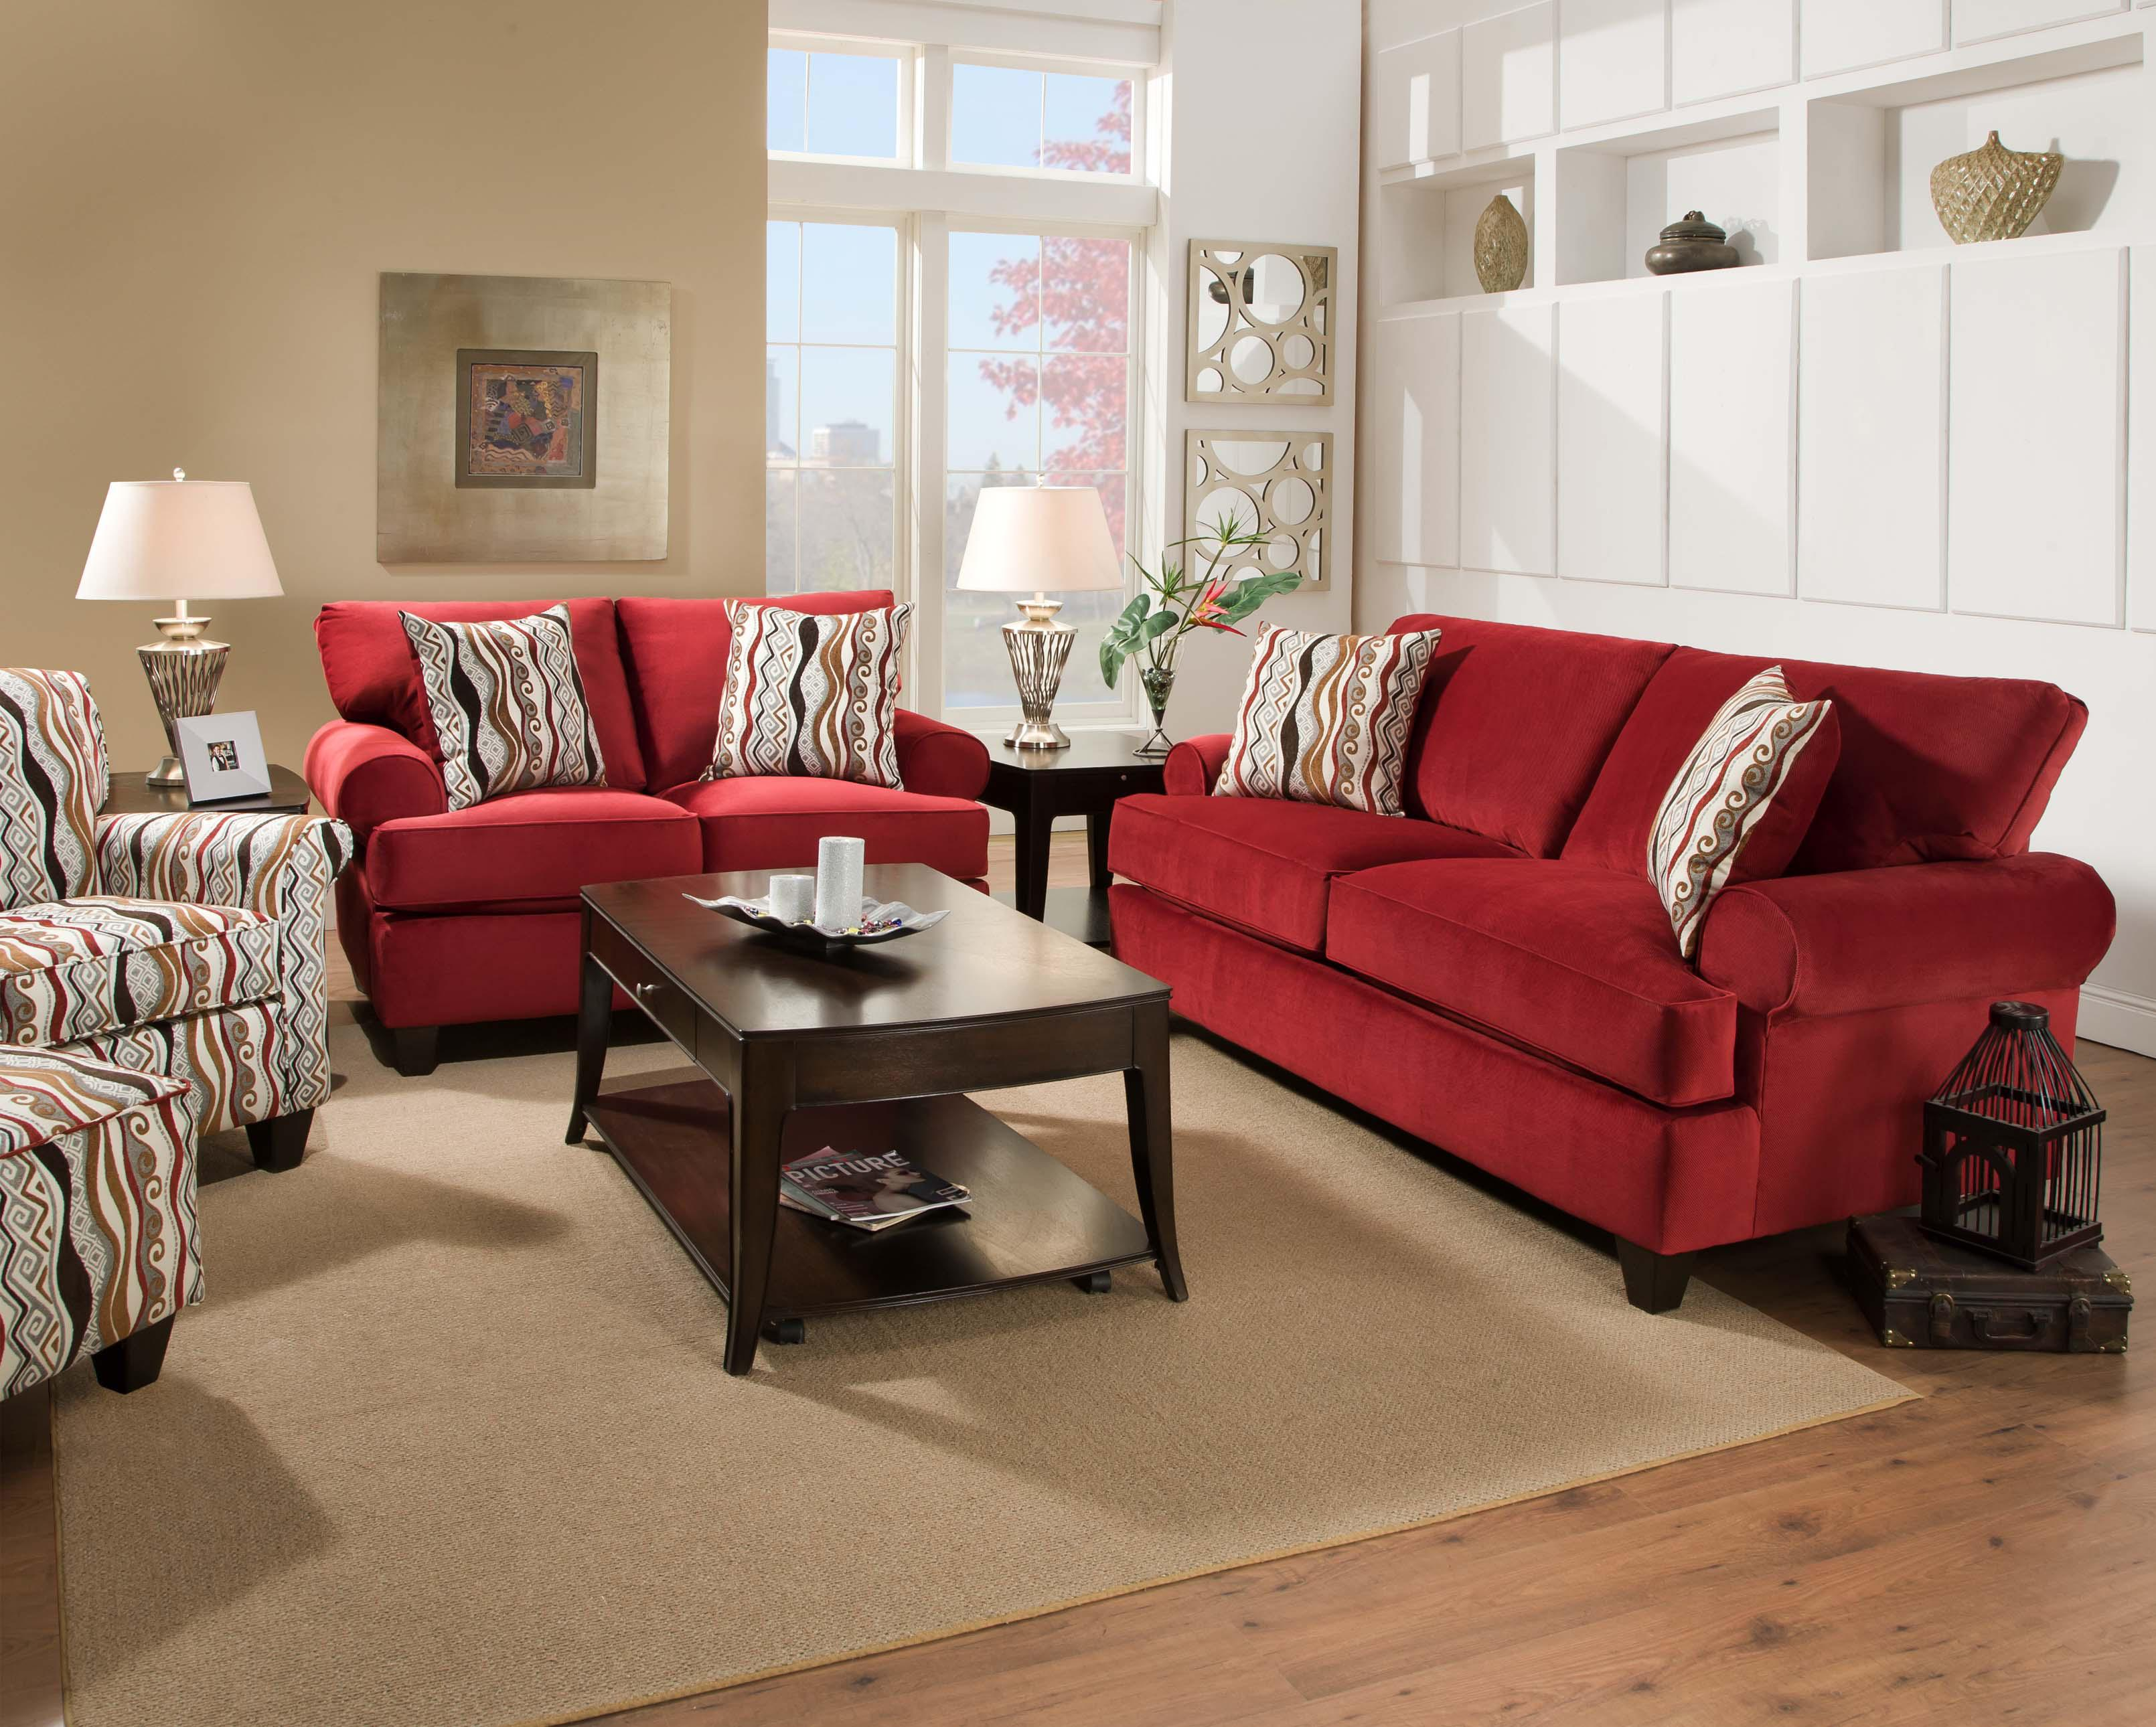 sofa standard red bessemer al room contemporary item furniture birmingham collections jackpot huntsville decatur casual and living alabaster lss hoover cupboard corinthian